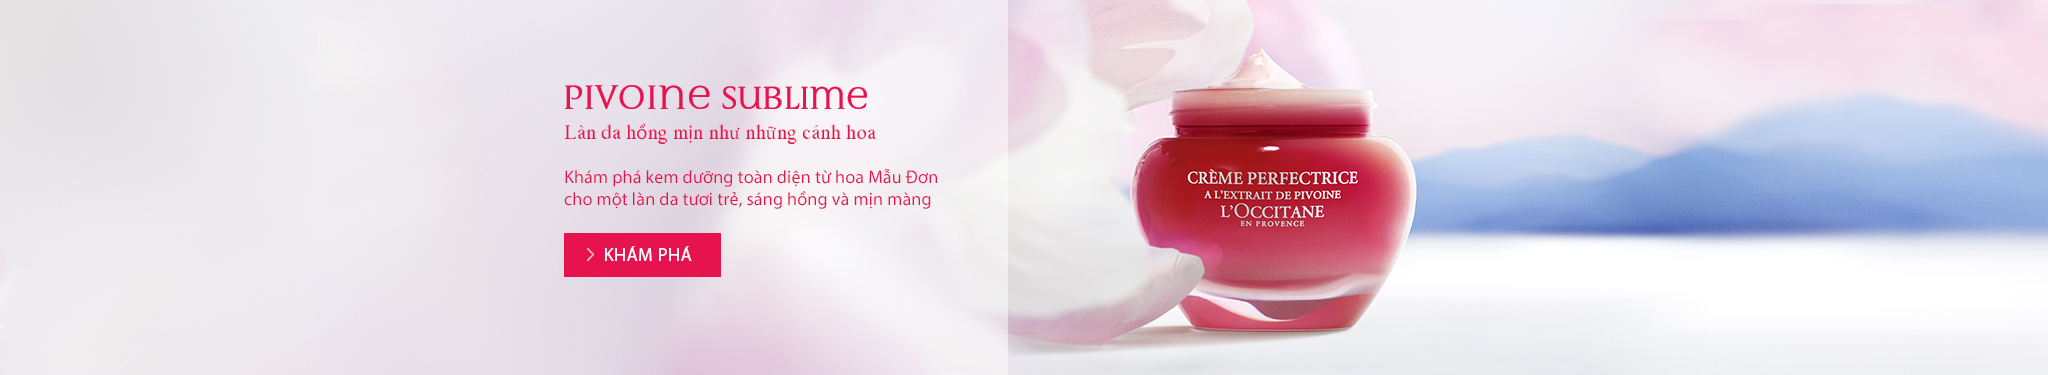 Pivoine Sublime Cream